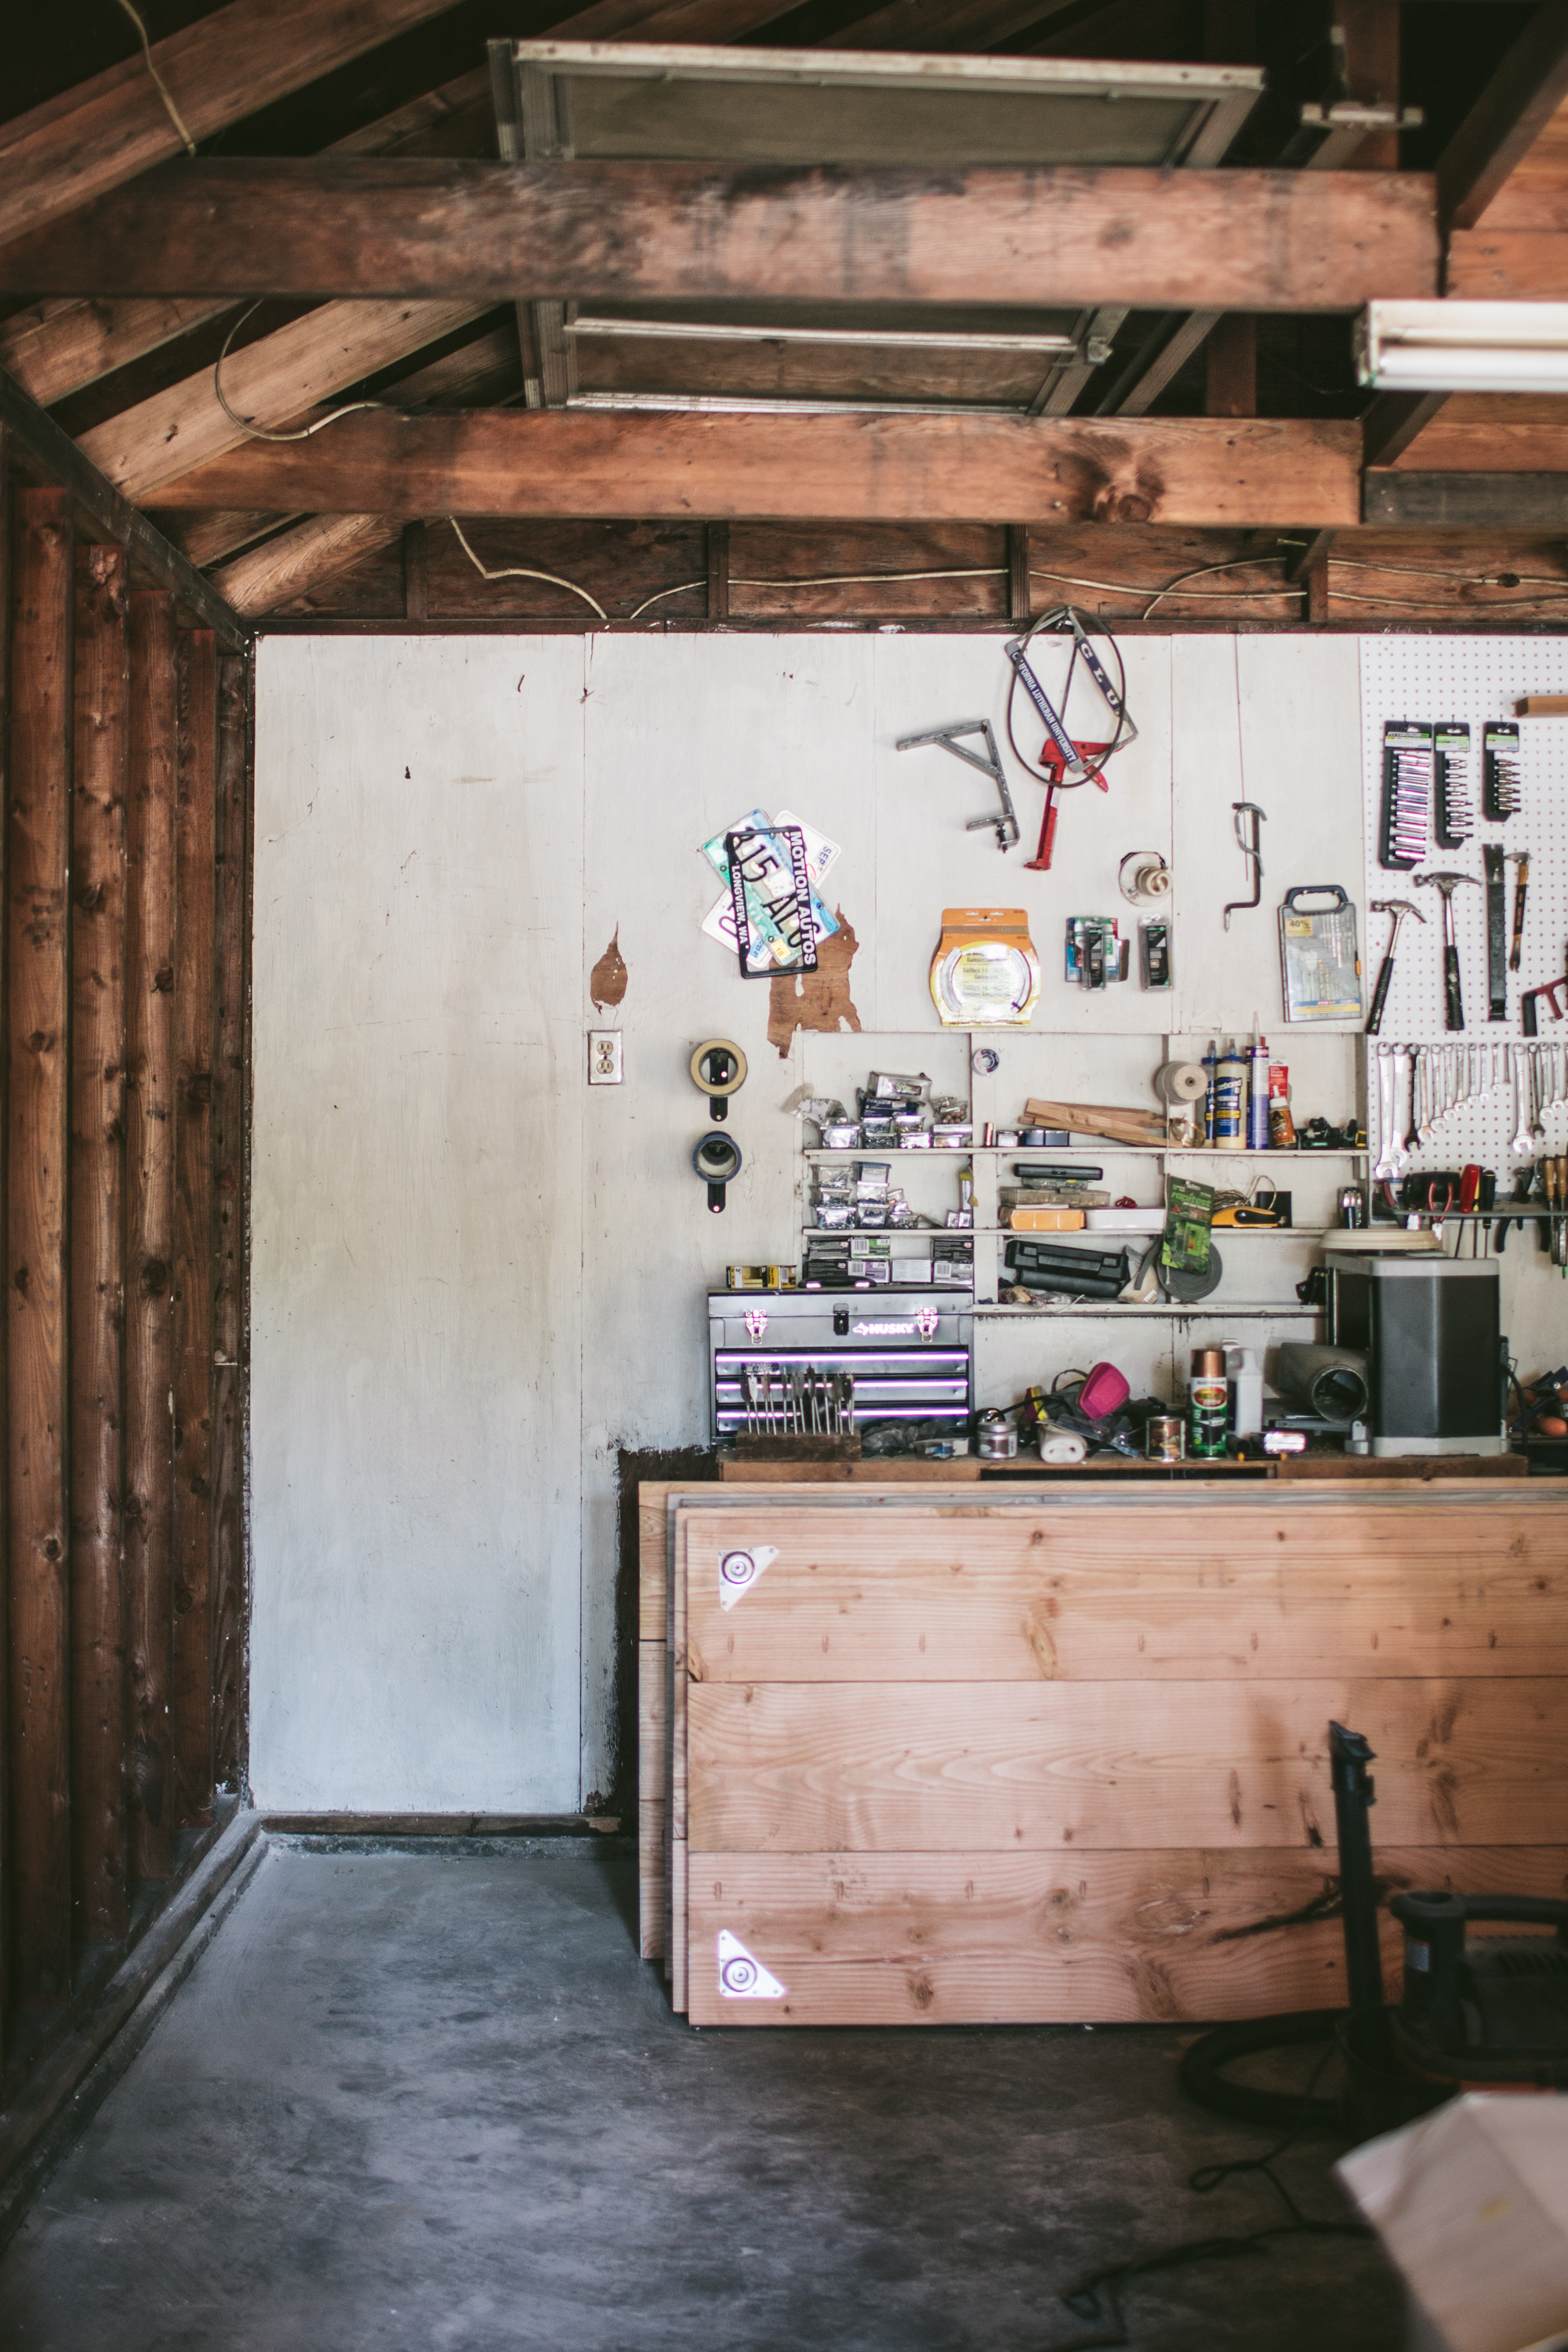 How I Turned my Garage into a Photography Studio Garage to Studio Remodel by Eva Kosmas Flores